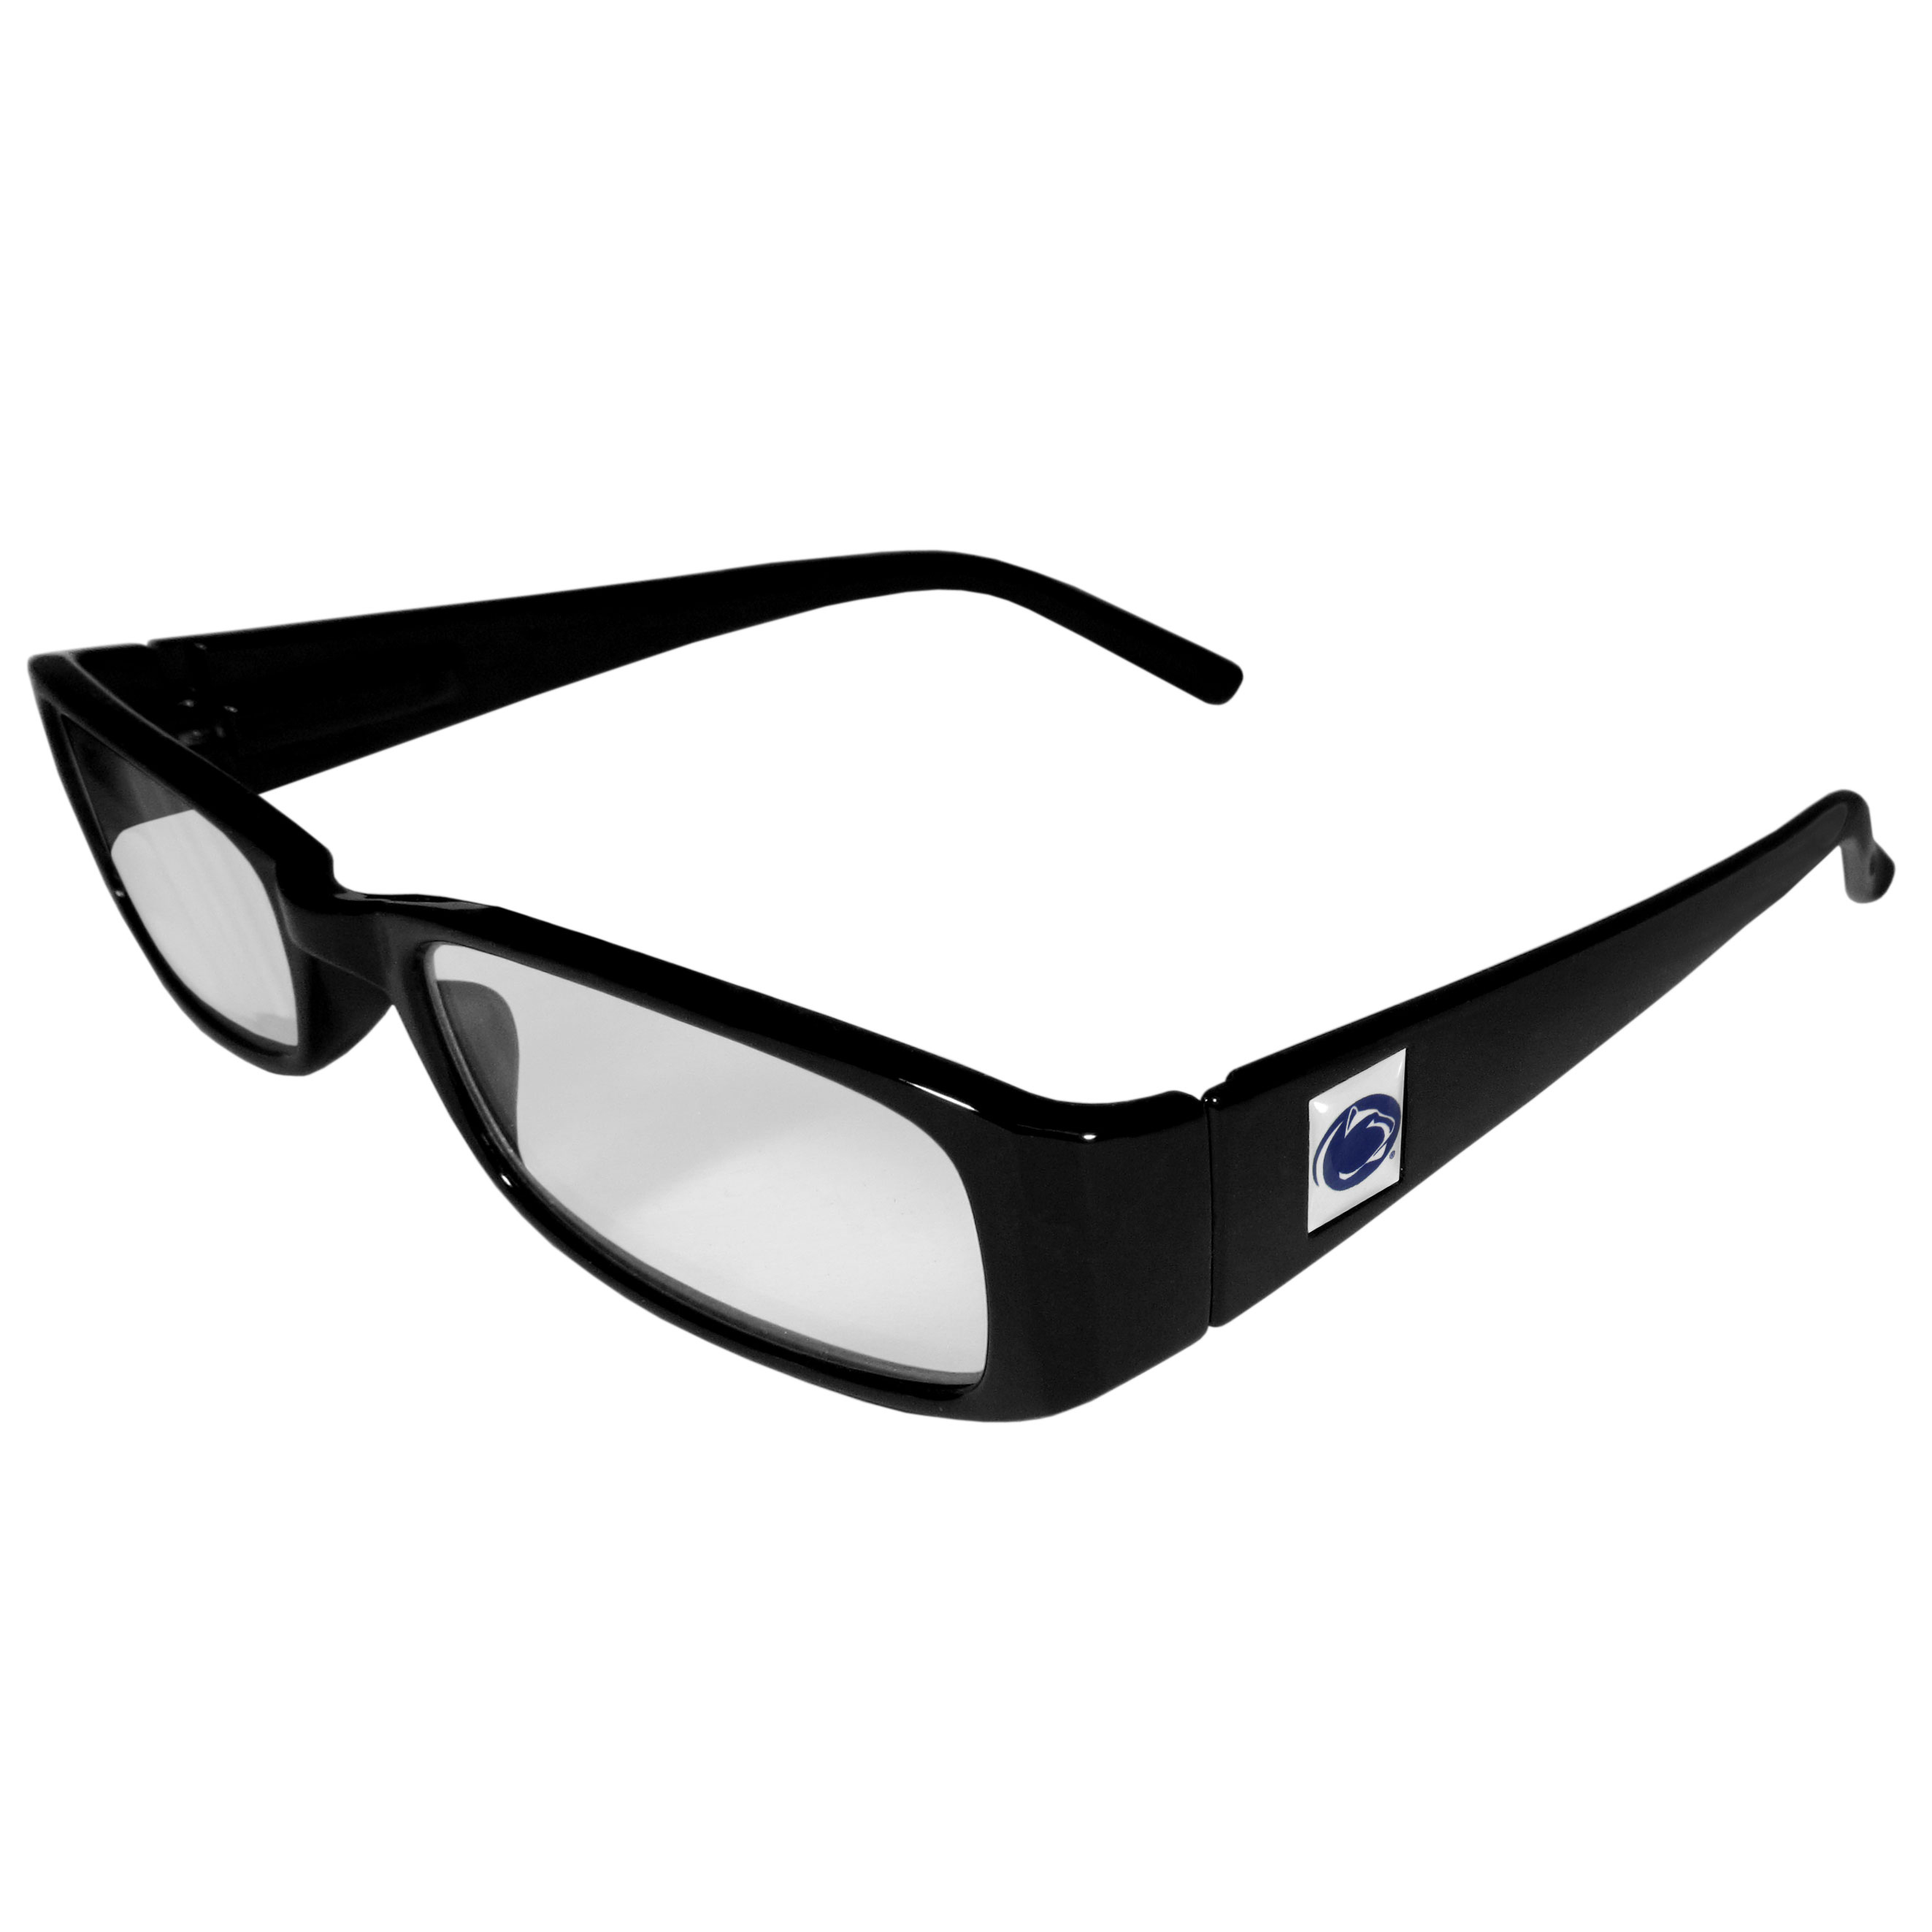 Penn St. Nittany Lions Black Reading Glasses +1.25 - Our Penn St. Nittany Lions reading glasses are 5.25 inches wide and feature the team logo on each arm. Magnification Power 1.25